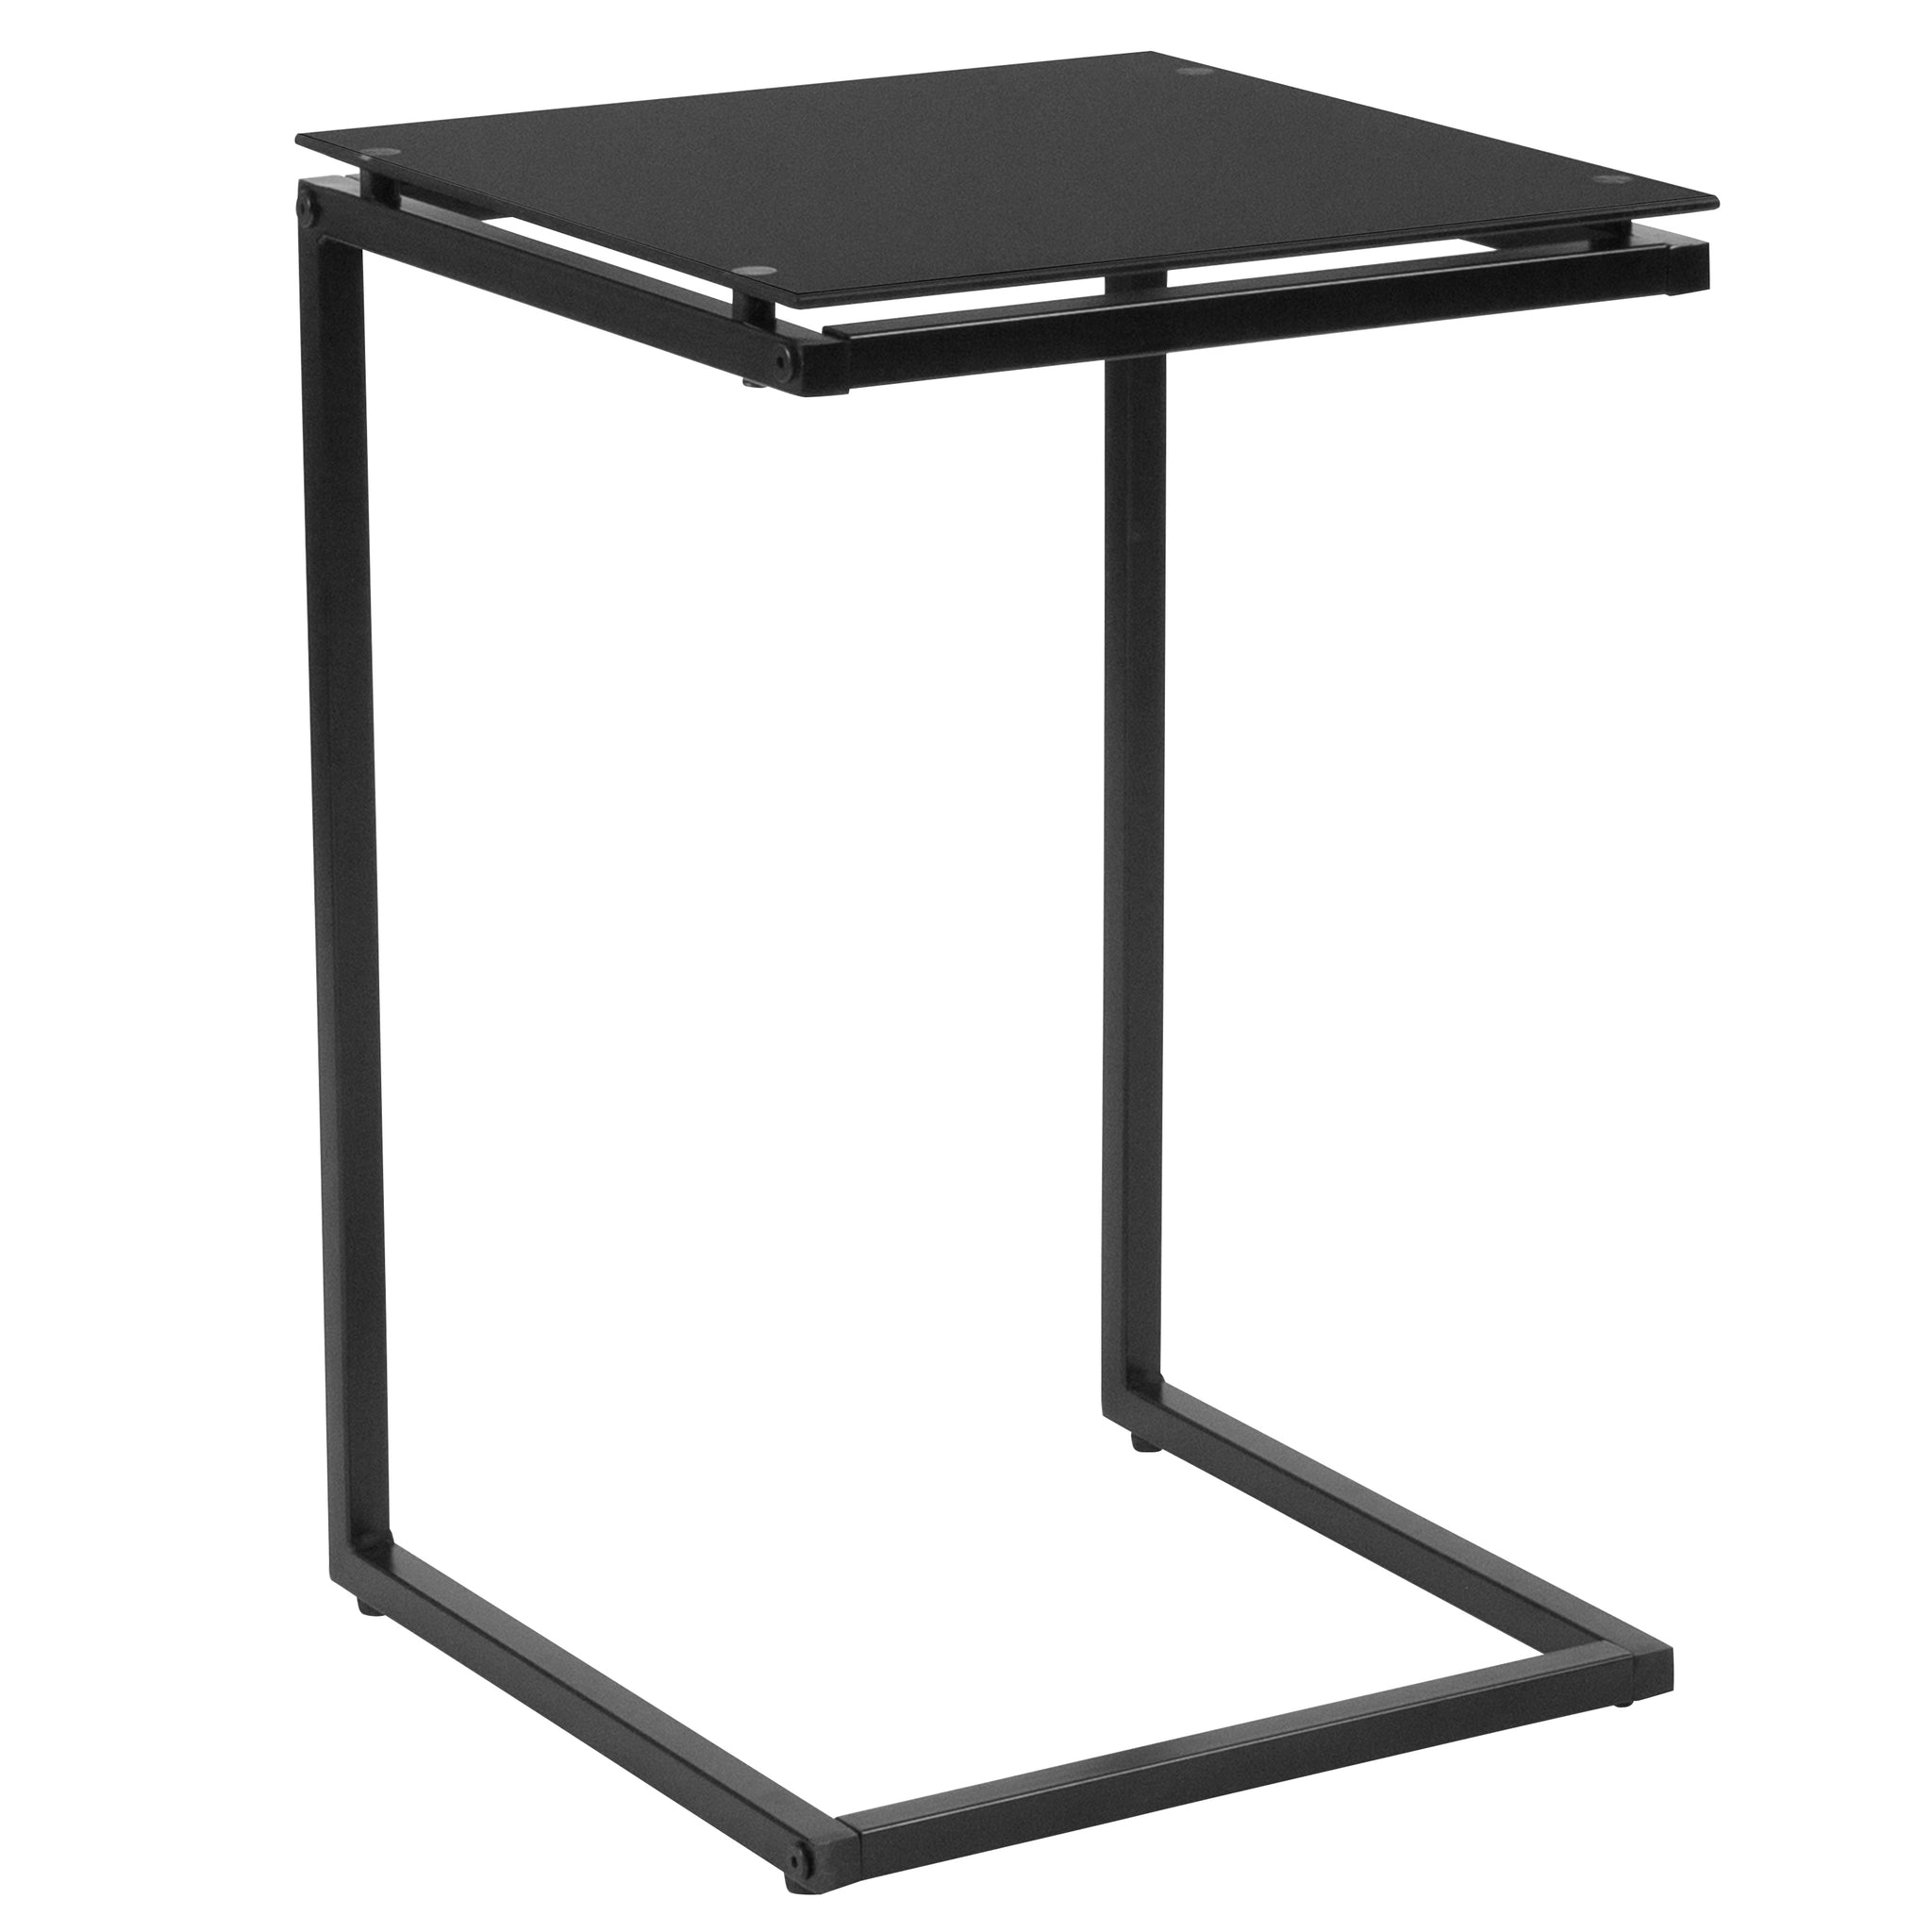 Burbank End Table with Metal Frame: Black